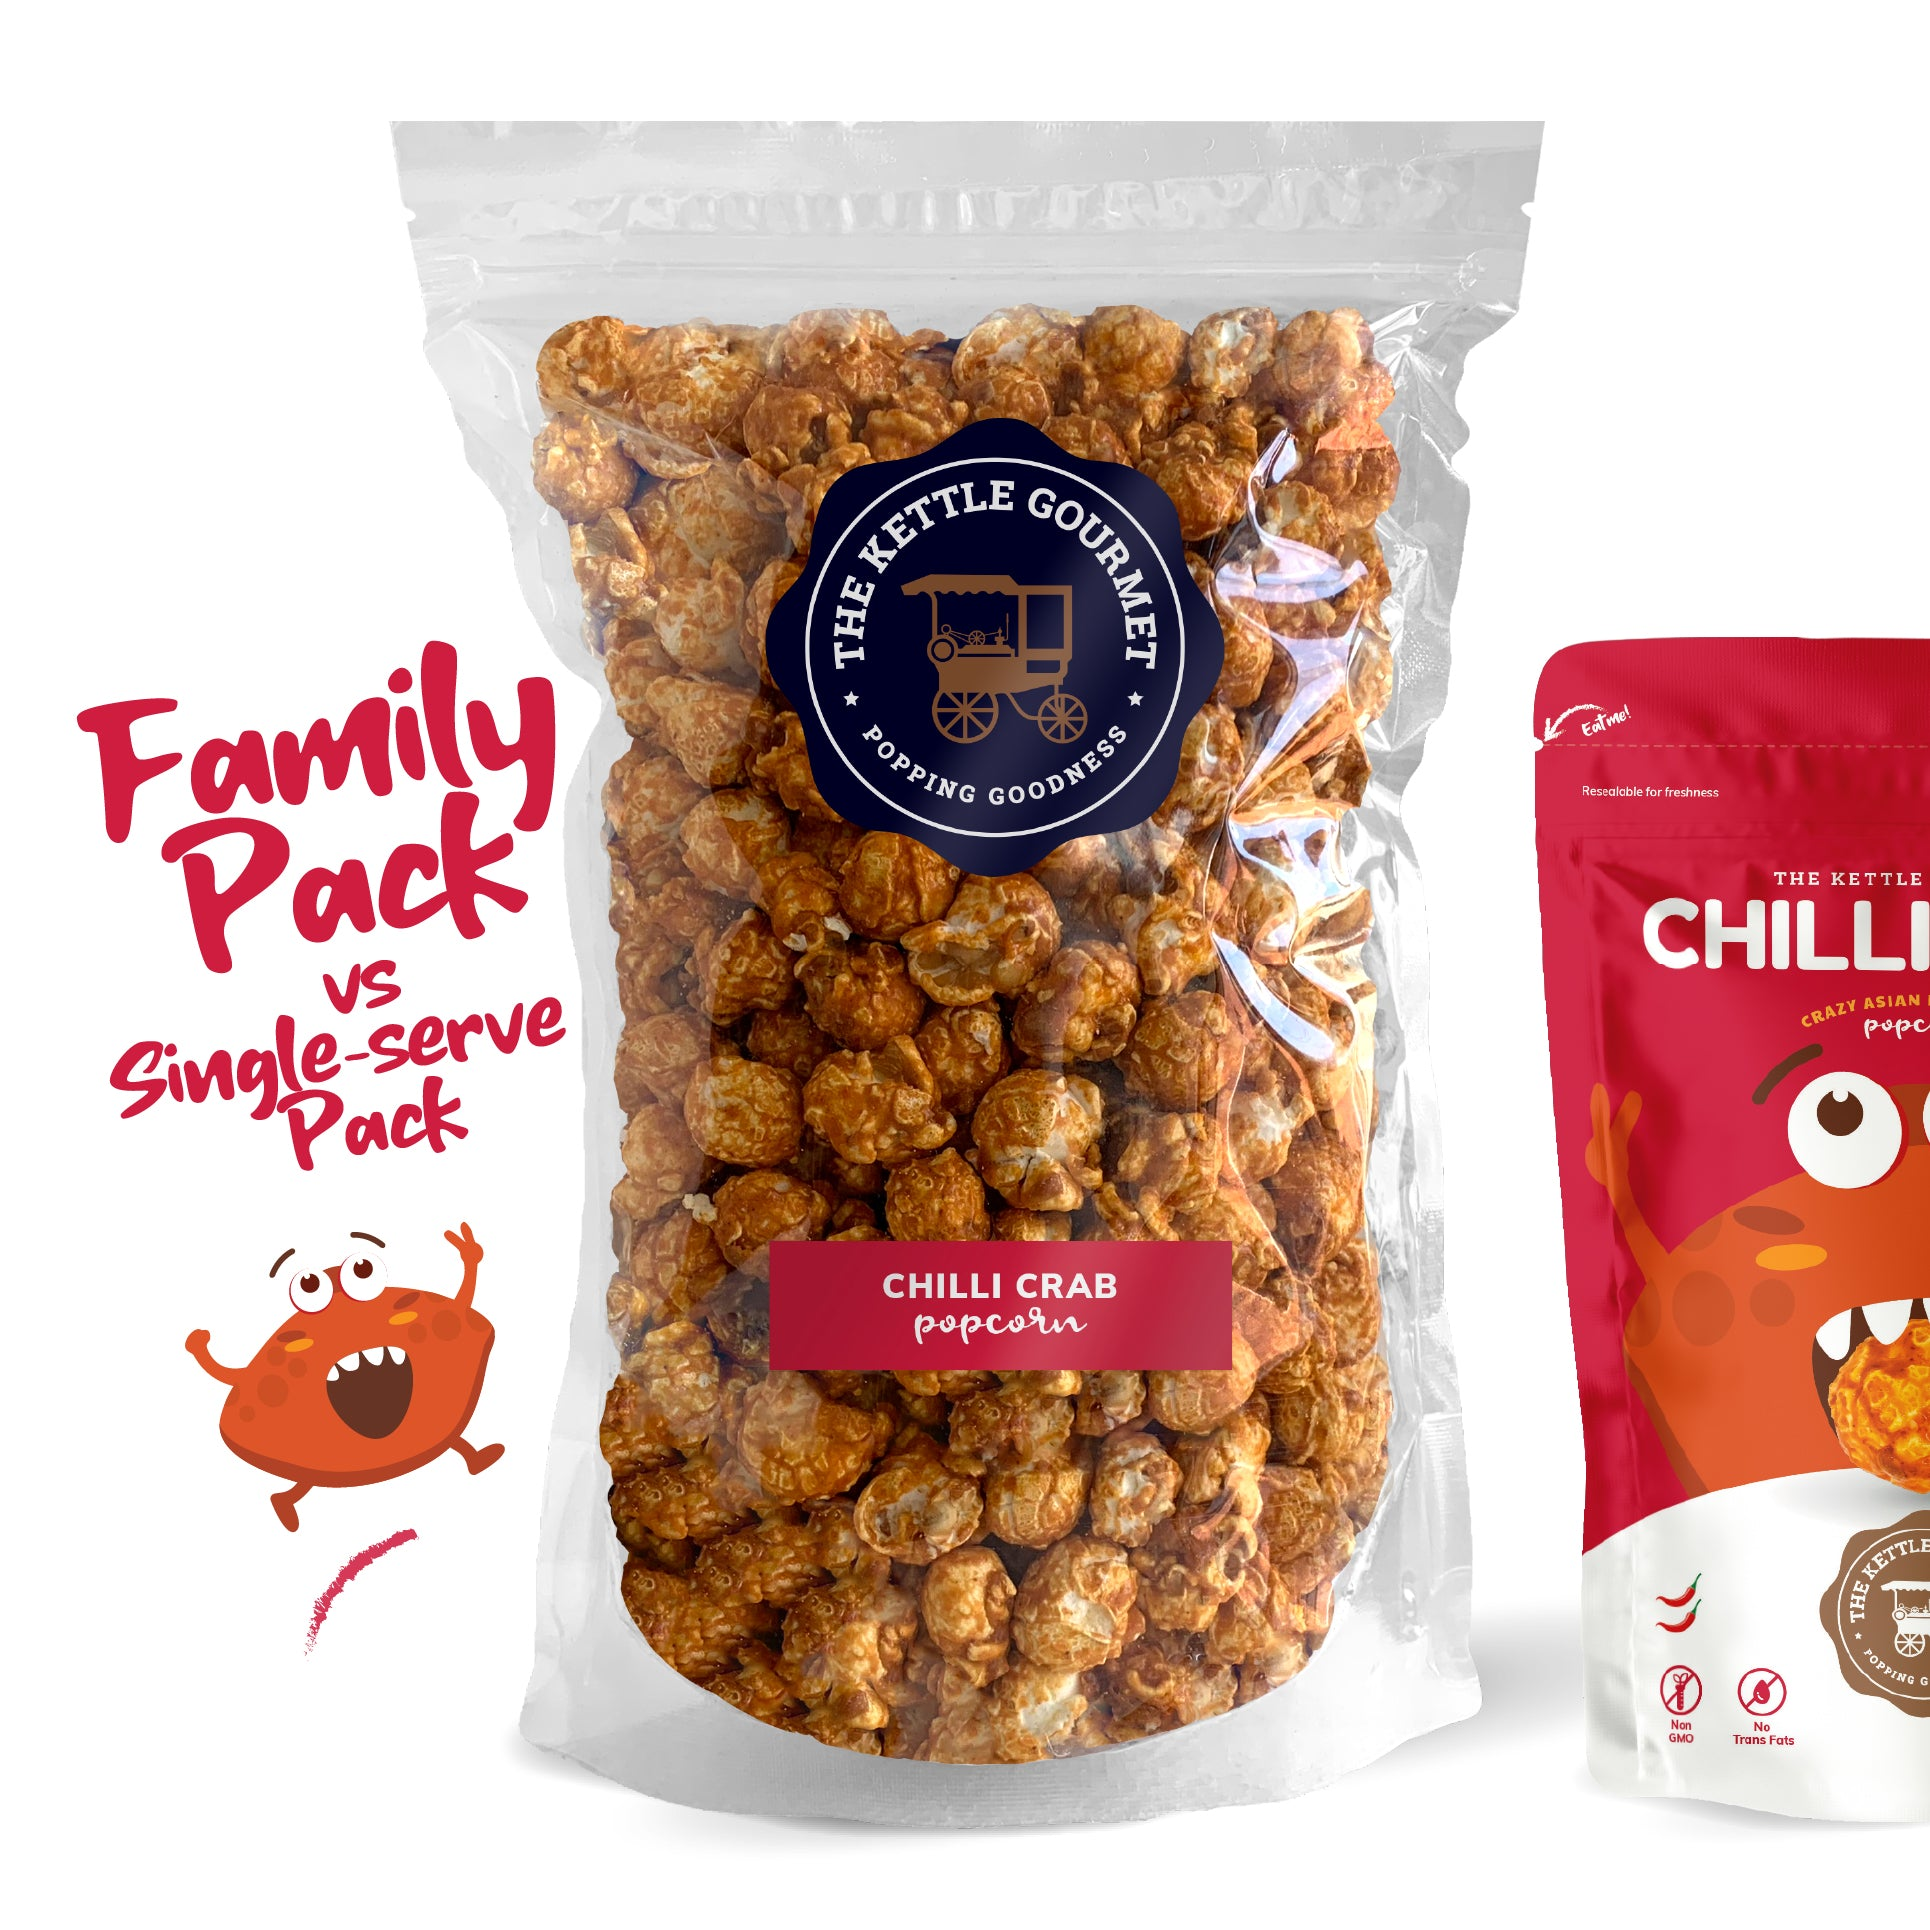 TKG Chilli Crab Flavoured Popcorn (Family Pack vs Single-serve)